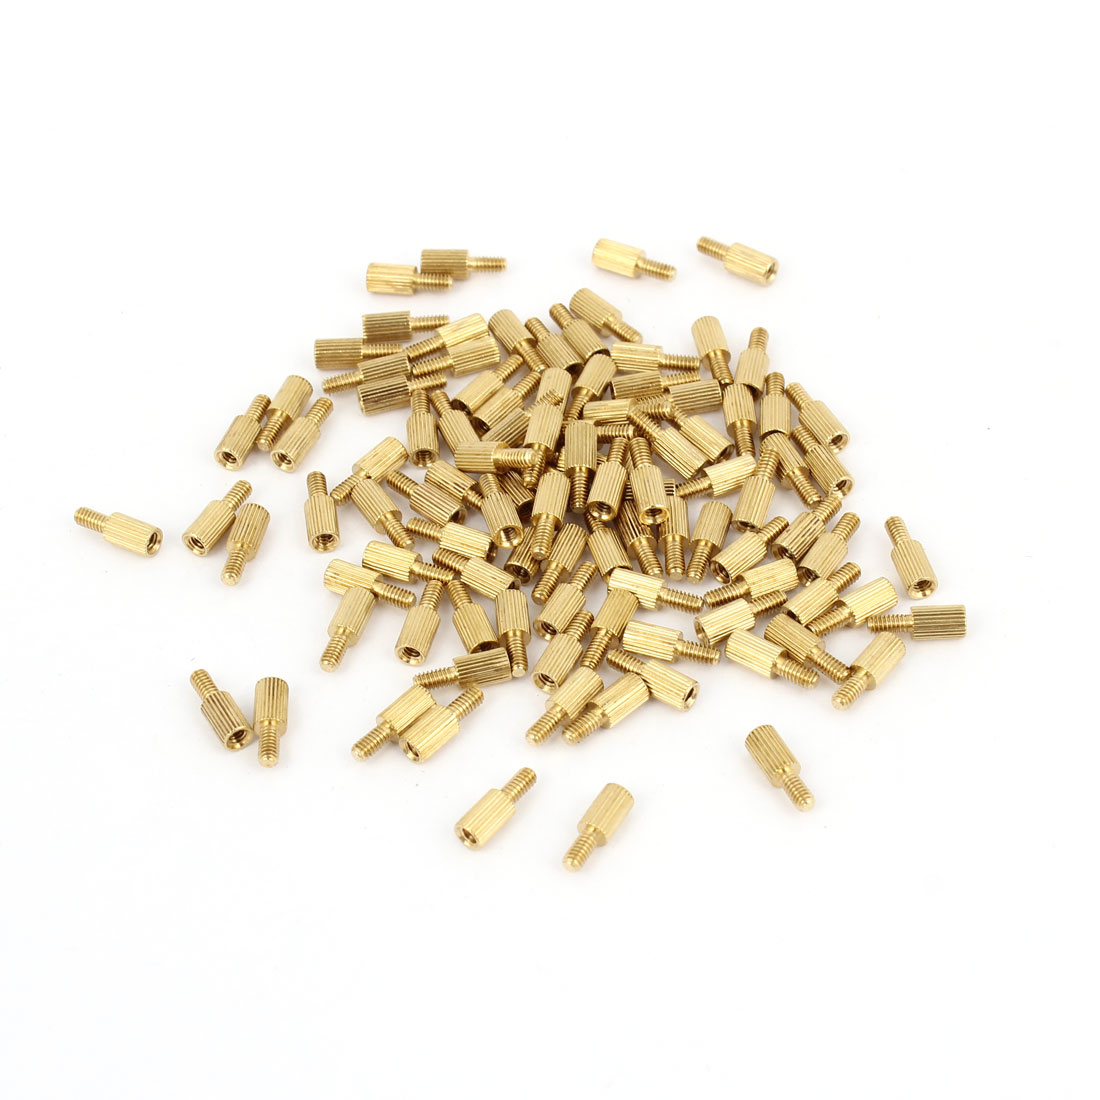 100Pcs Male to Female Thread PCB Board Brass Pillars Standoff M2x5mm